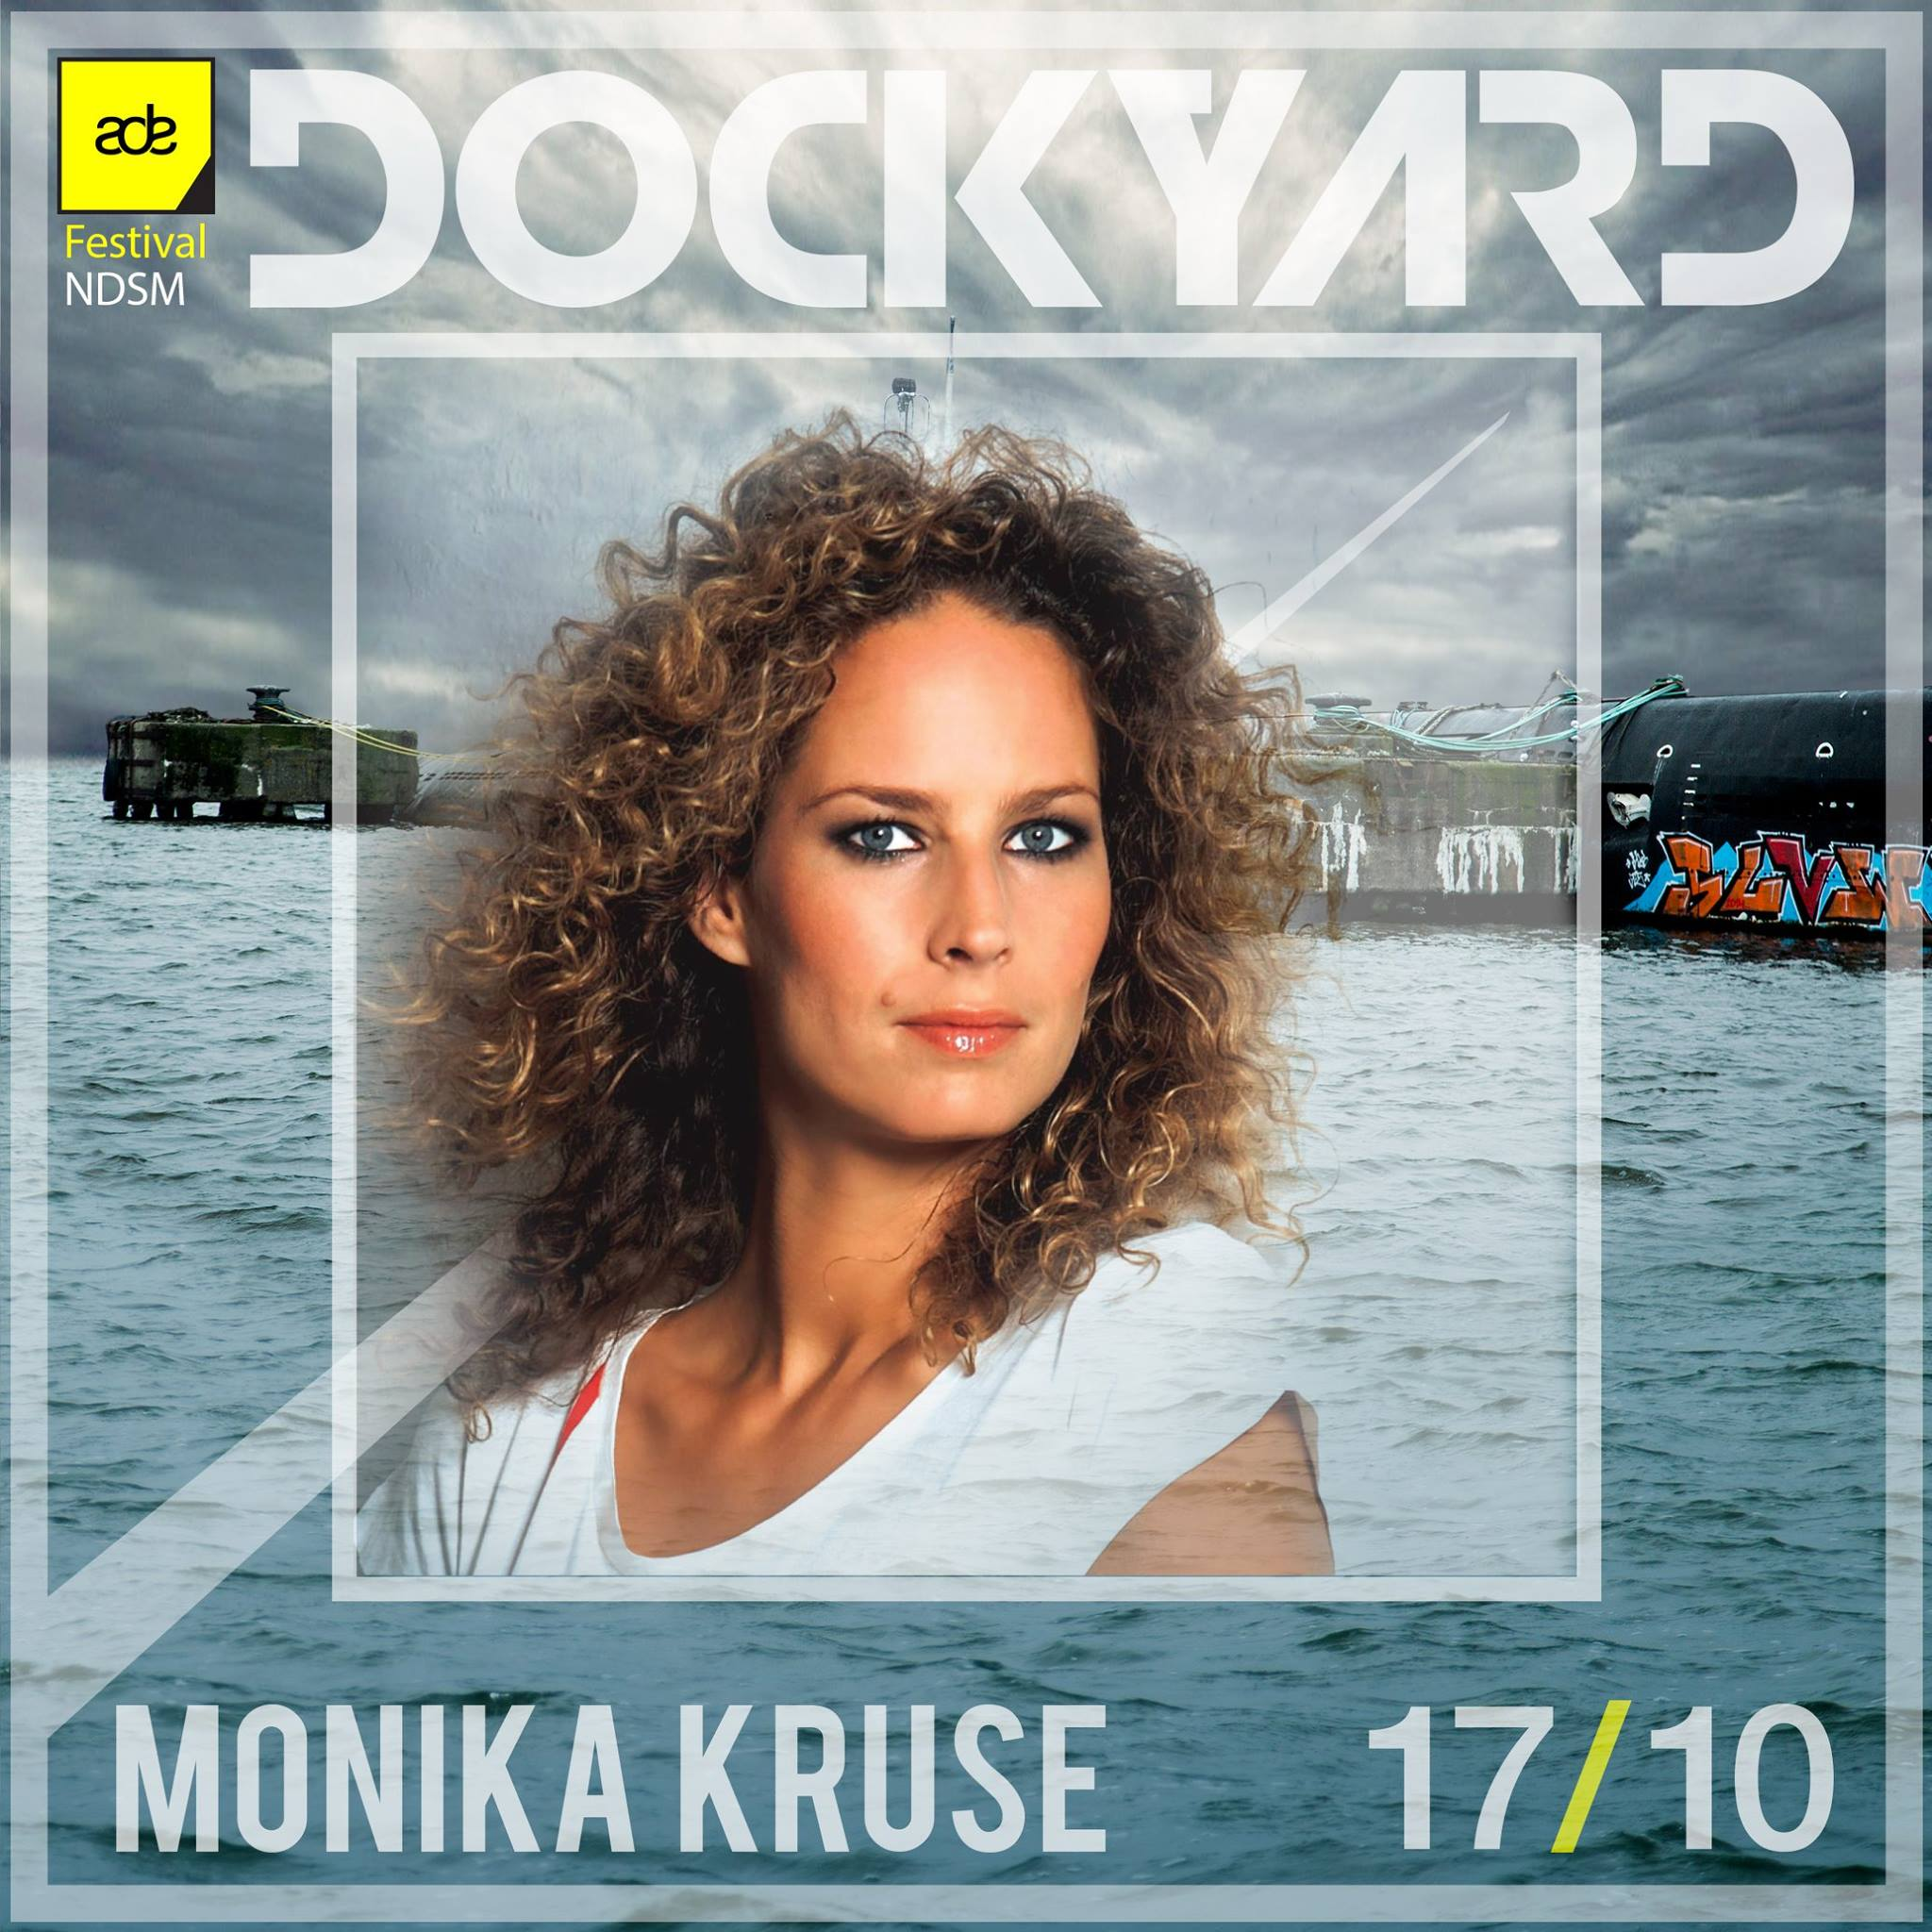 download → Monika Kruse - live at Dockyard Festival, FACT Stage, NDSM Docklands, ADE 2015 - 17-Oct-2015